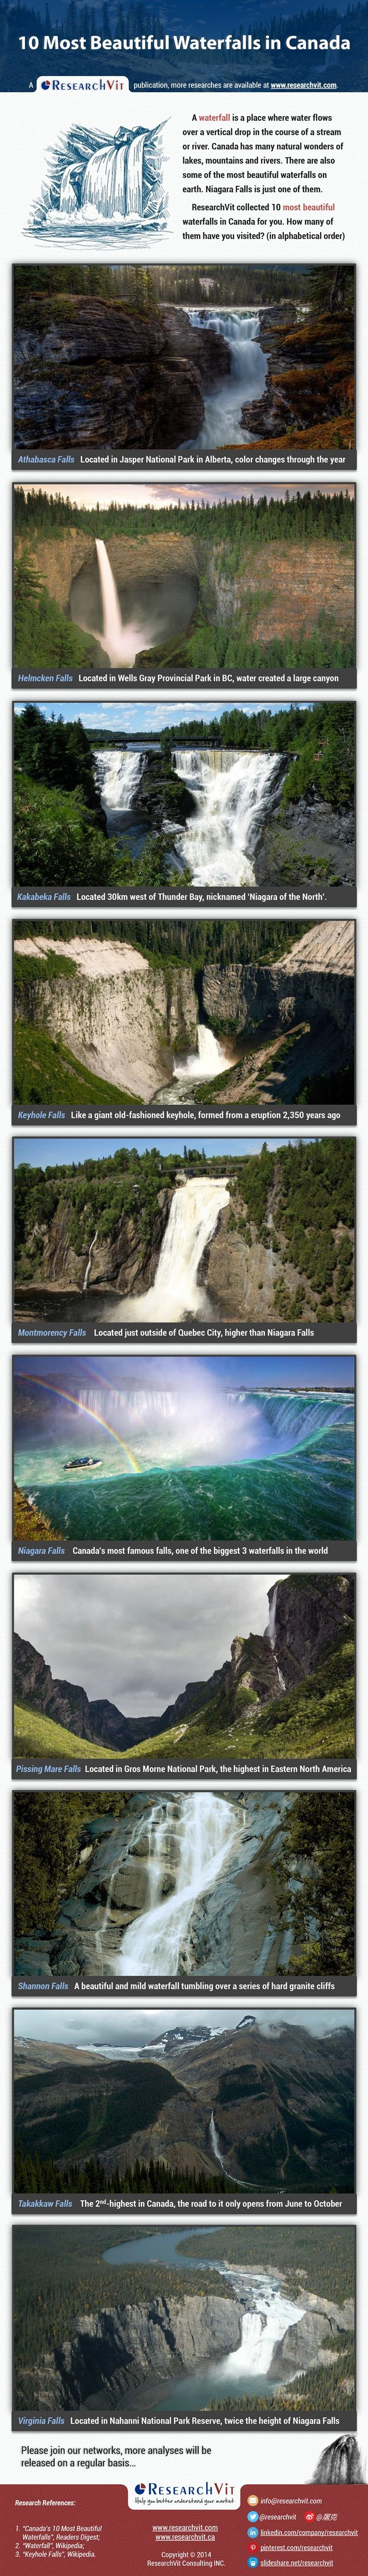 10 Most Beautiful Waterfalls in Canada: Awaterfallis a place where water flows over a vertical drop in the course of a stream or river. Canada has many natural wonders of lakes, mountains and rivers. There are also some of the most beautiful waterfalls on earth. Niagara Falls is just one of them. ResearchVit collected 10 most beautiful waterfalls in Canada for you. How many of them have you visited?